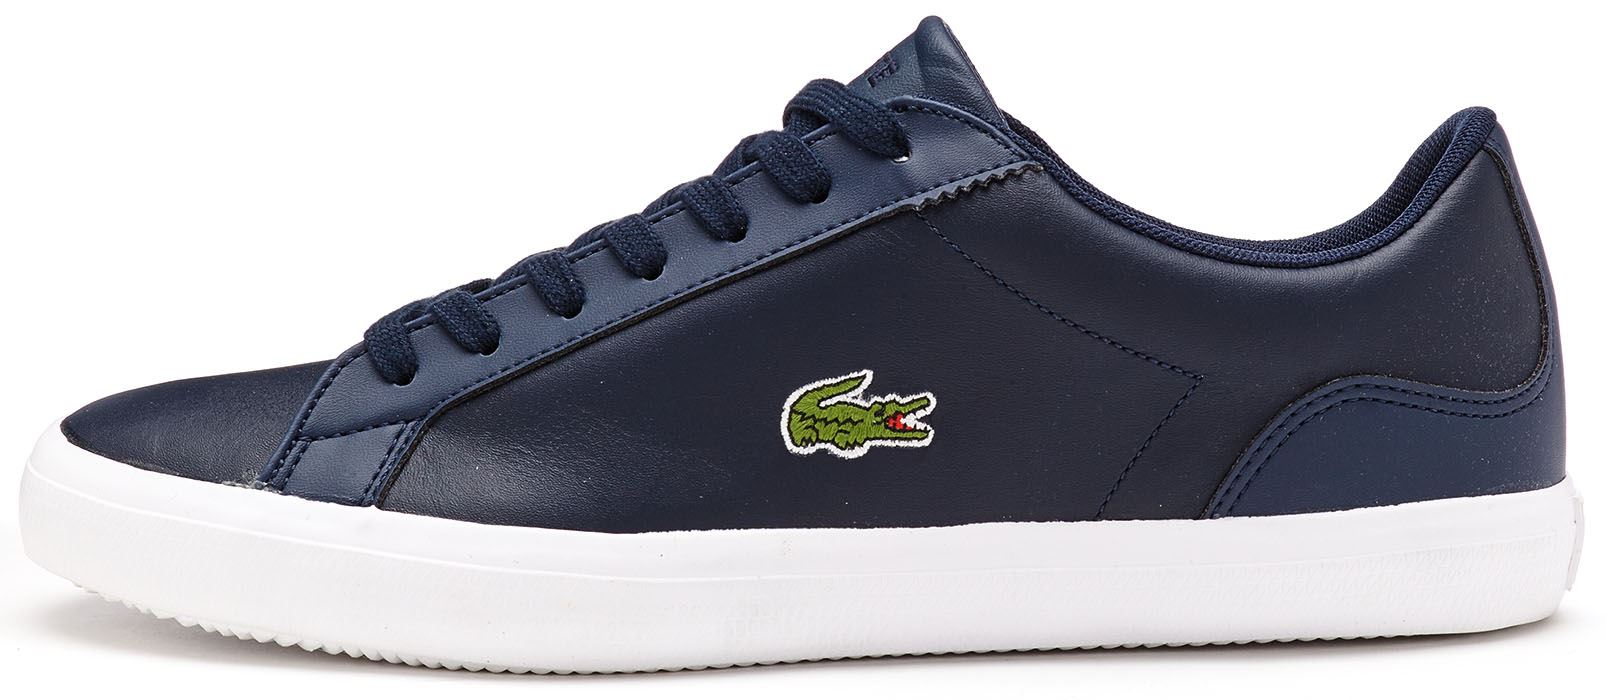 13f1abd852053e Lacoste Lerond BL 1 CAM Leather Trainers in Navy Blue 733CAM1032 003 .